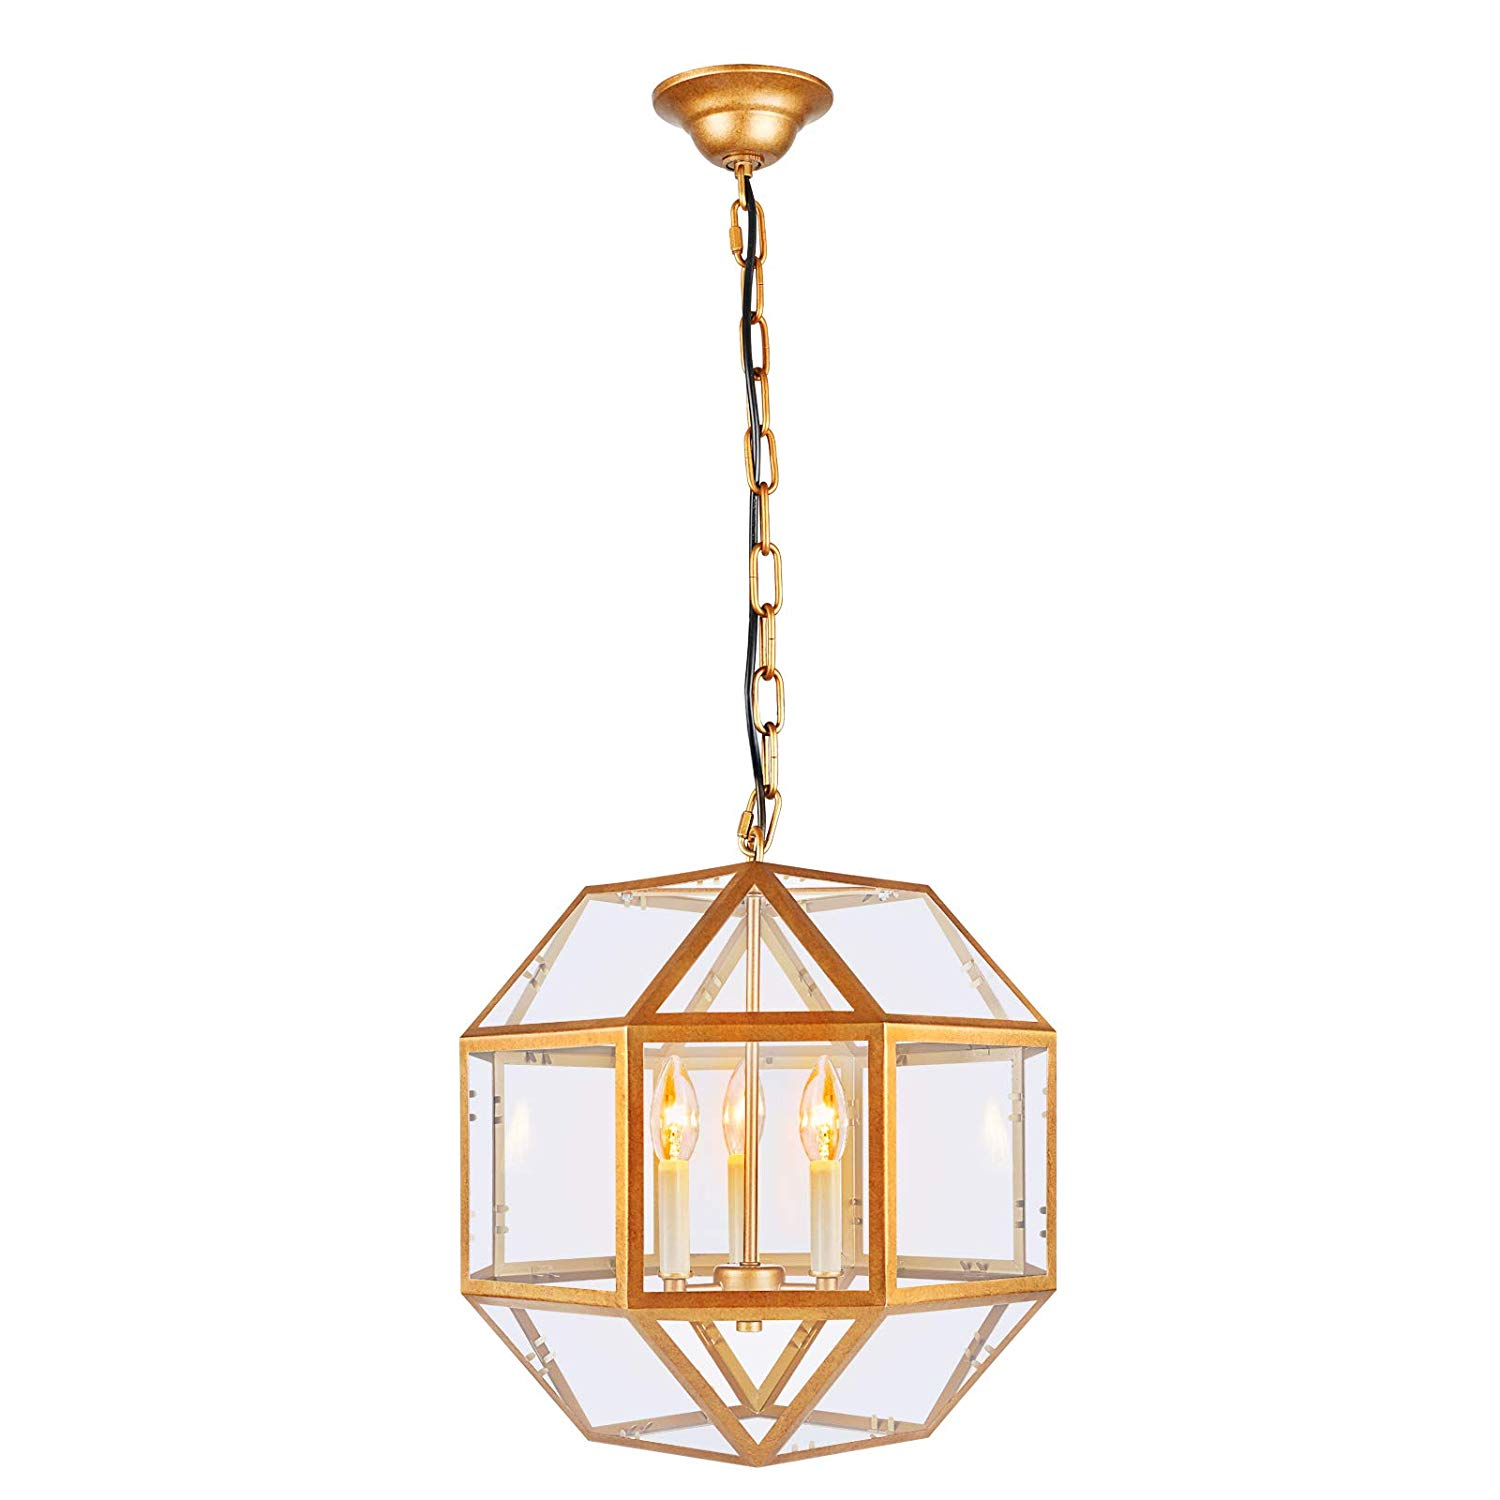 Paragon Home 3-Light Antique Brass Lantern Pendant Lighting with Clear Glass, Industrial Chandelier for Kitchen, Dining Room, Living Room, Hanging Light. - Living room